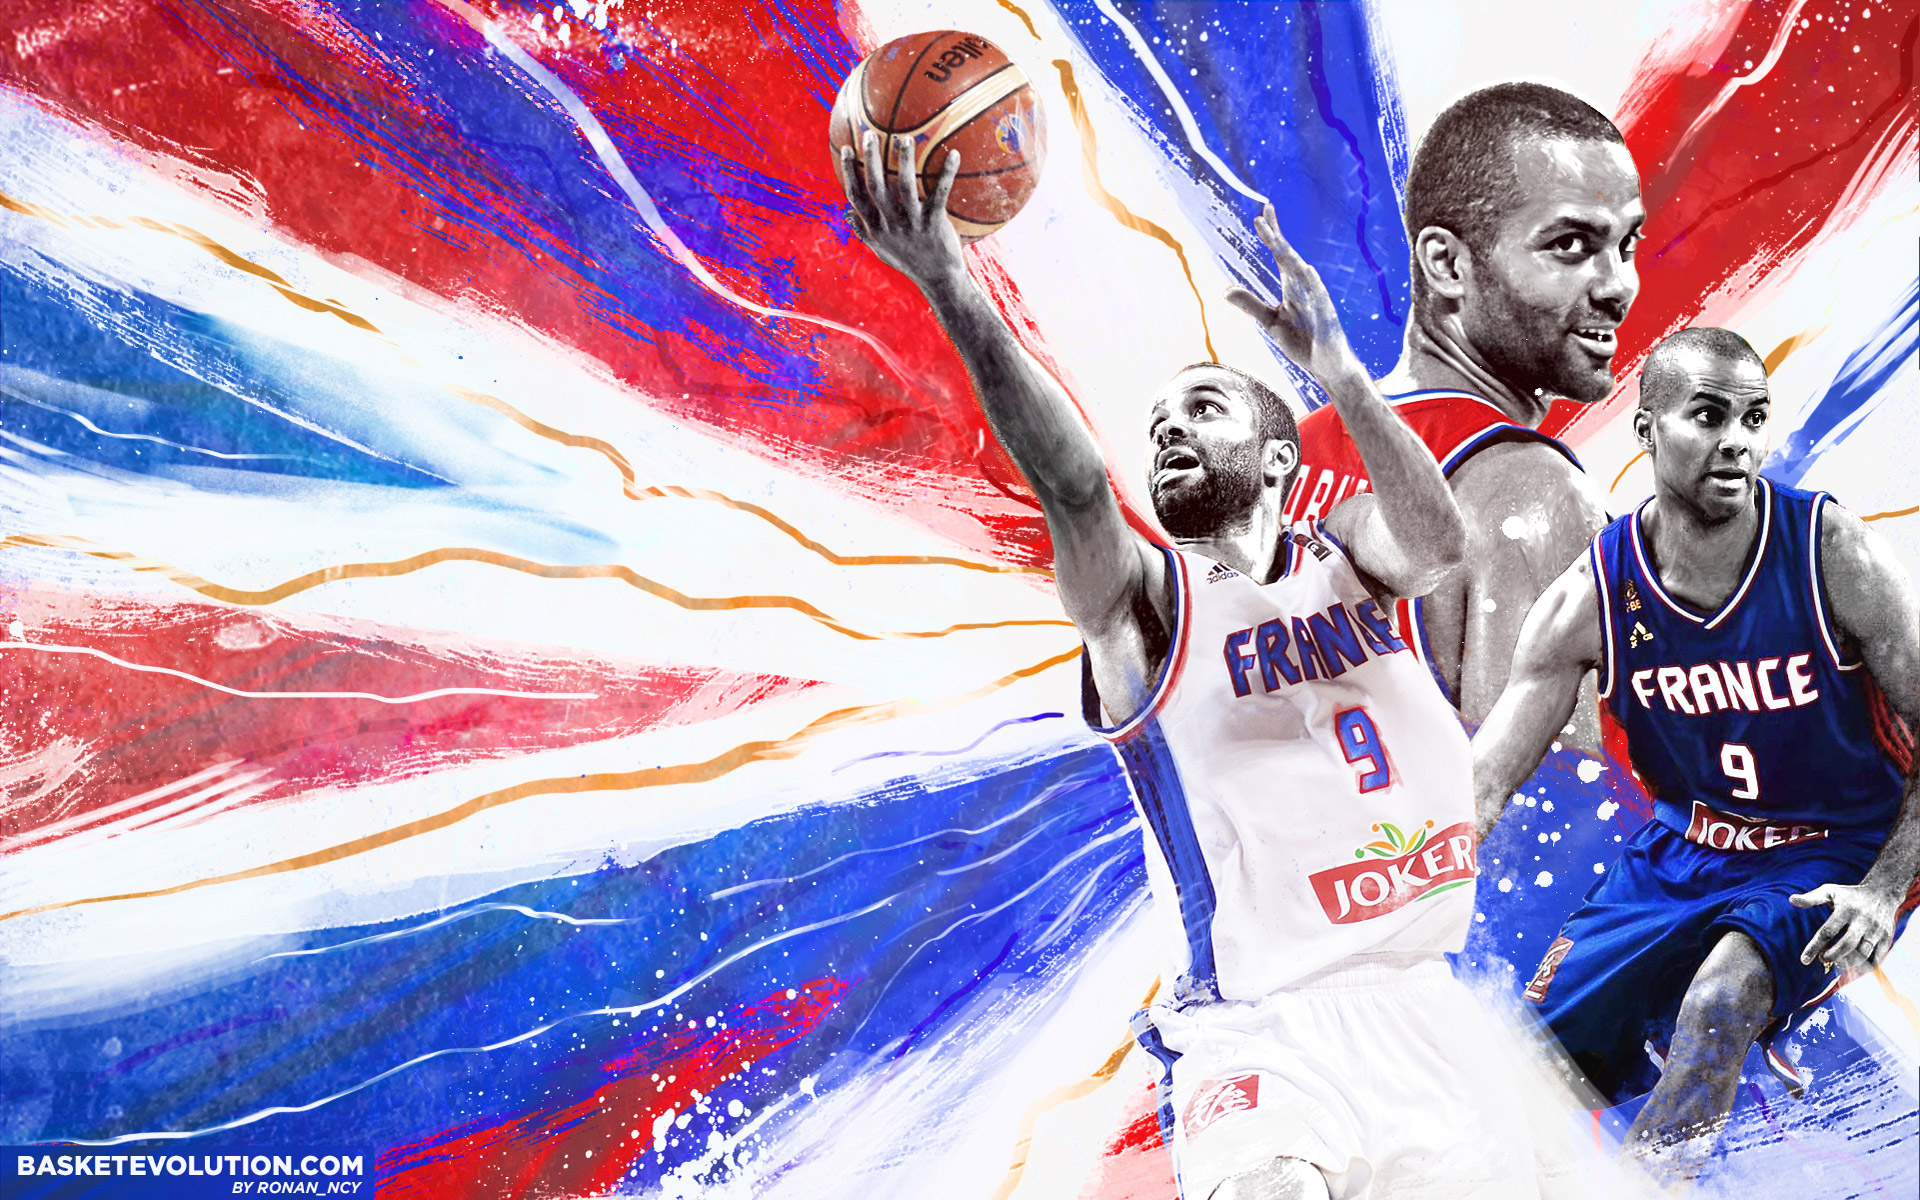 Tony Parker France Team 2015 Wallpaper | Basketball ...